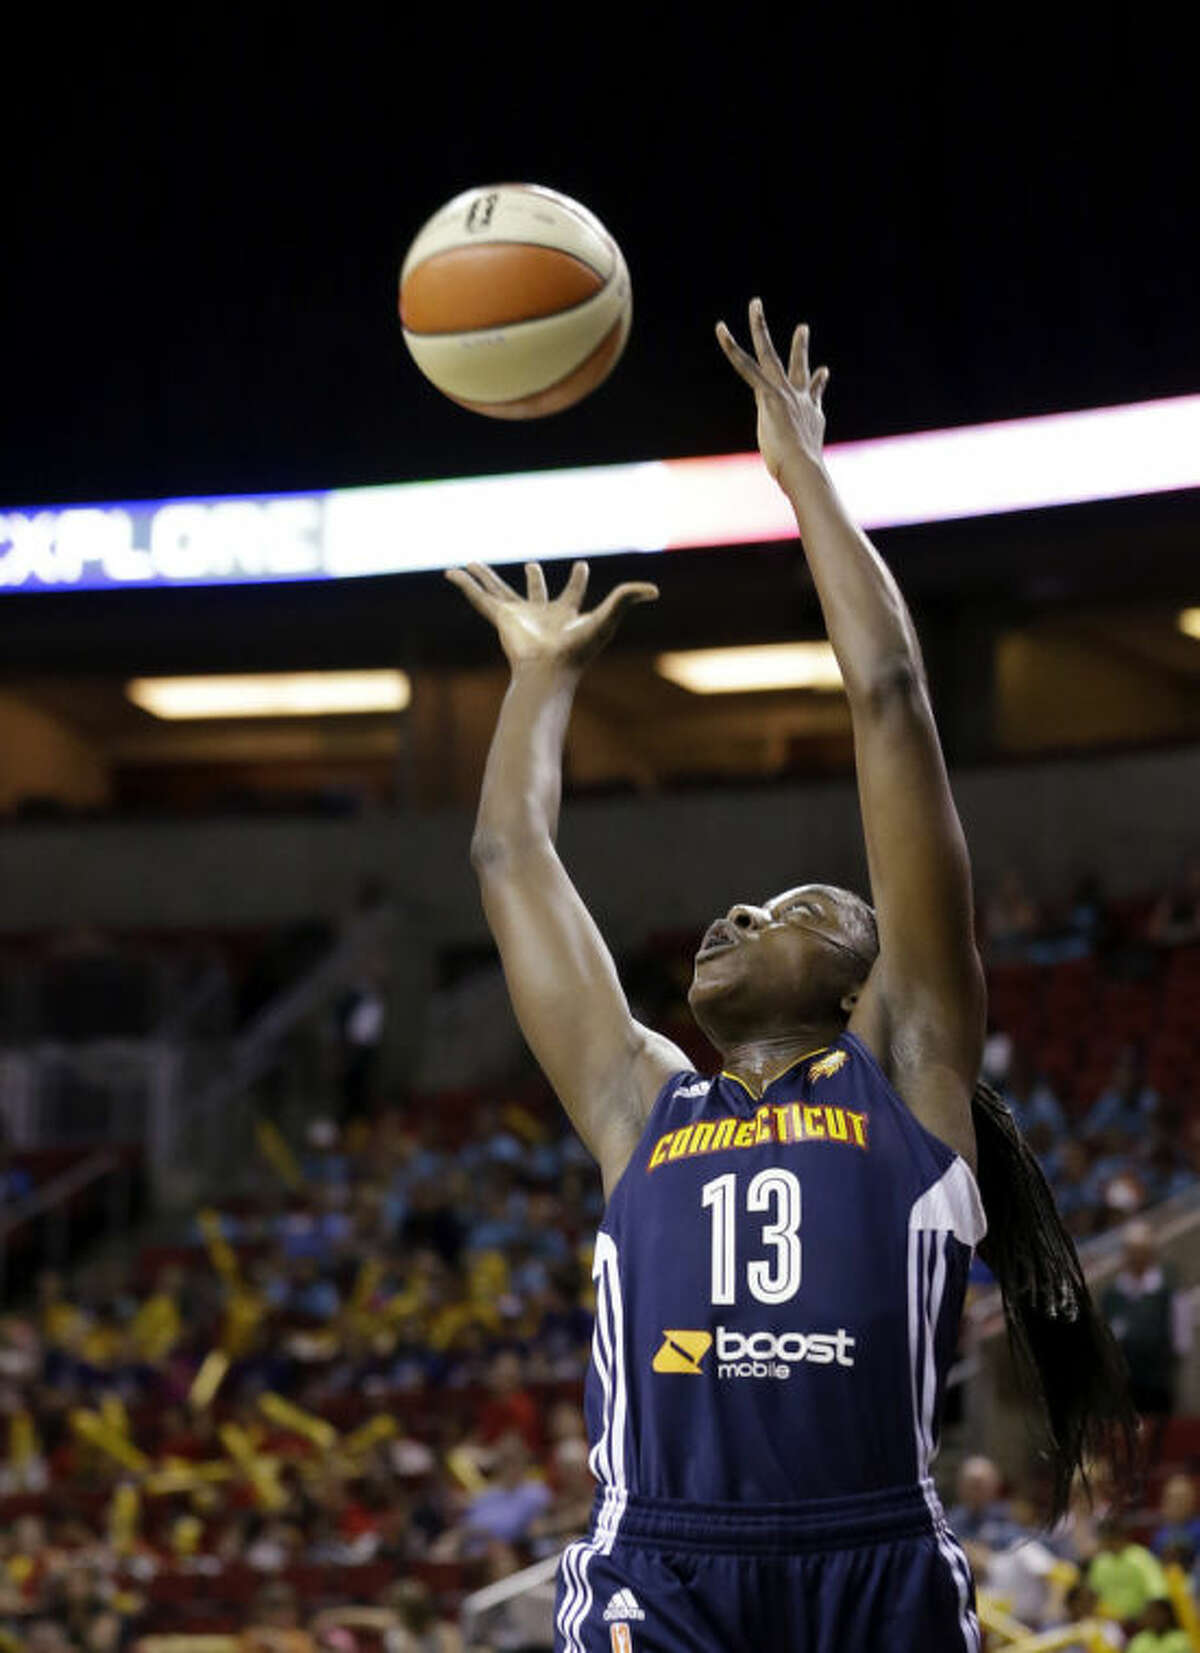 Connecticut Sun's Chiney Ogwumike grabs a rebound against the Seattle Storm during the first half of a WNBA basketball game Tuesday, July 15, 2014, in Seattle. (AP Photo/Elaine Thompson)